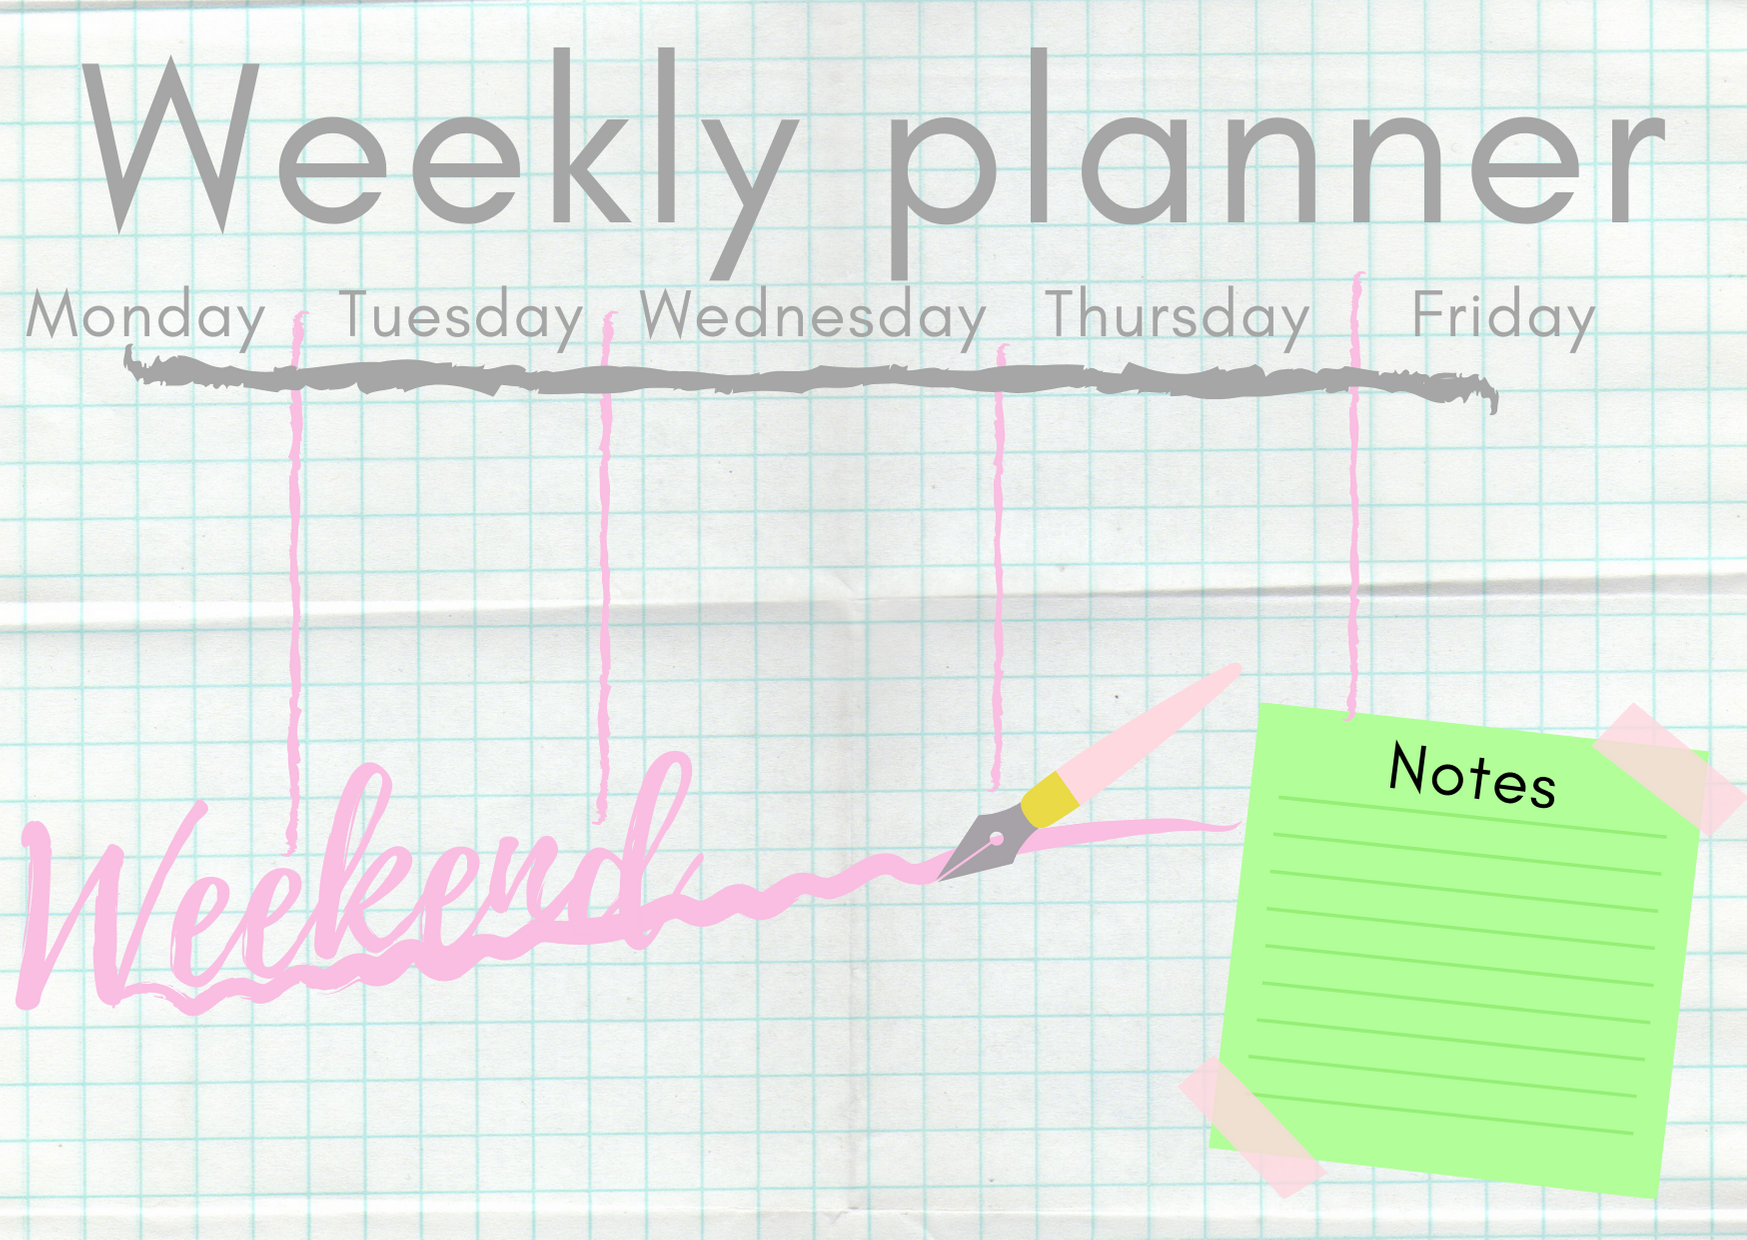 Weekly plannerpng